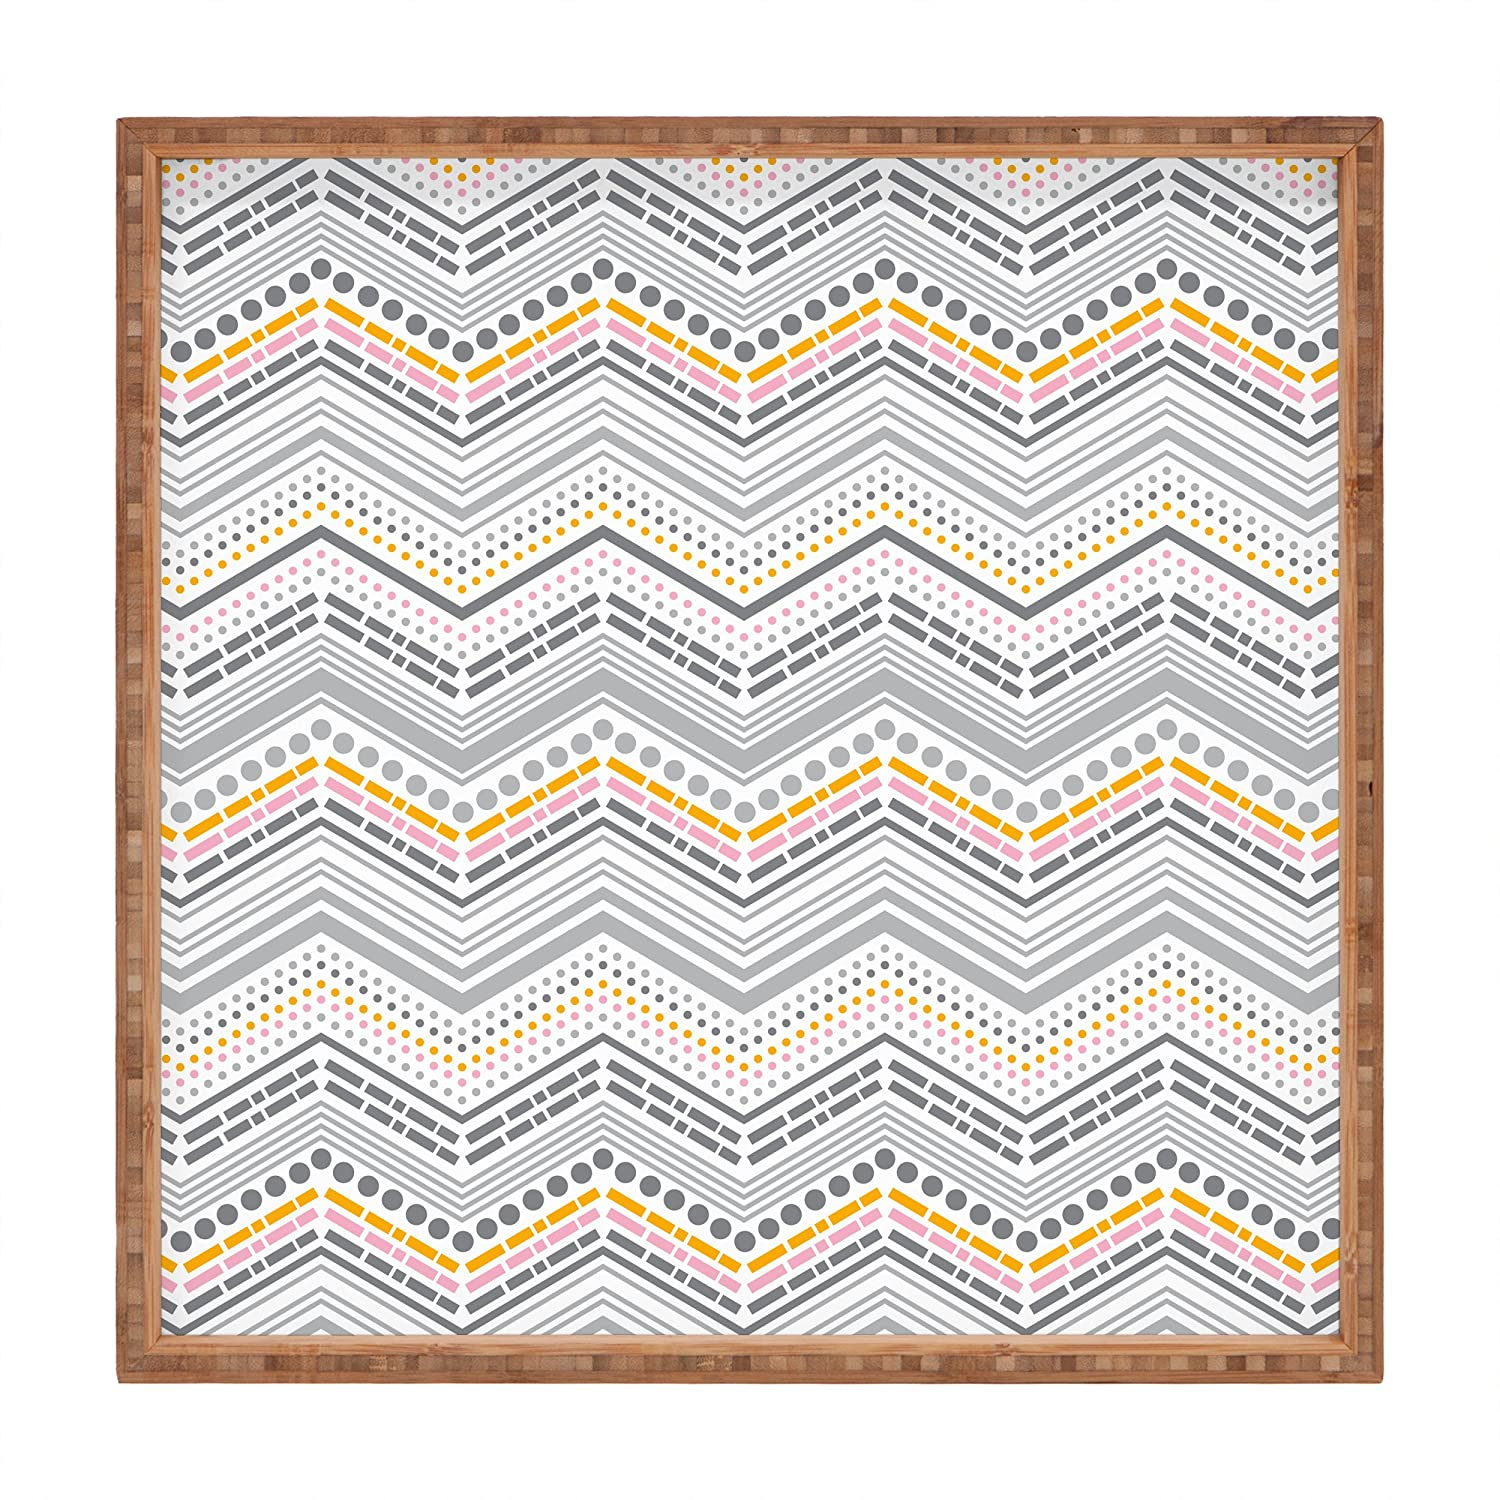 Deny Designs Heather Dutton Bestrewn Lagoon Indoor/Outdoor Square Tray, 12' x 12' 12 x 12 16849-tsqumd